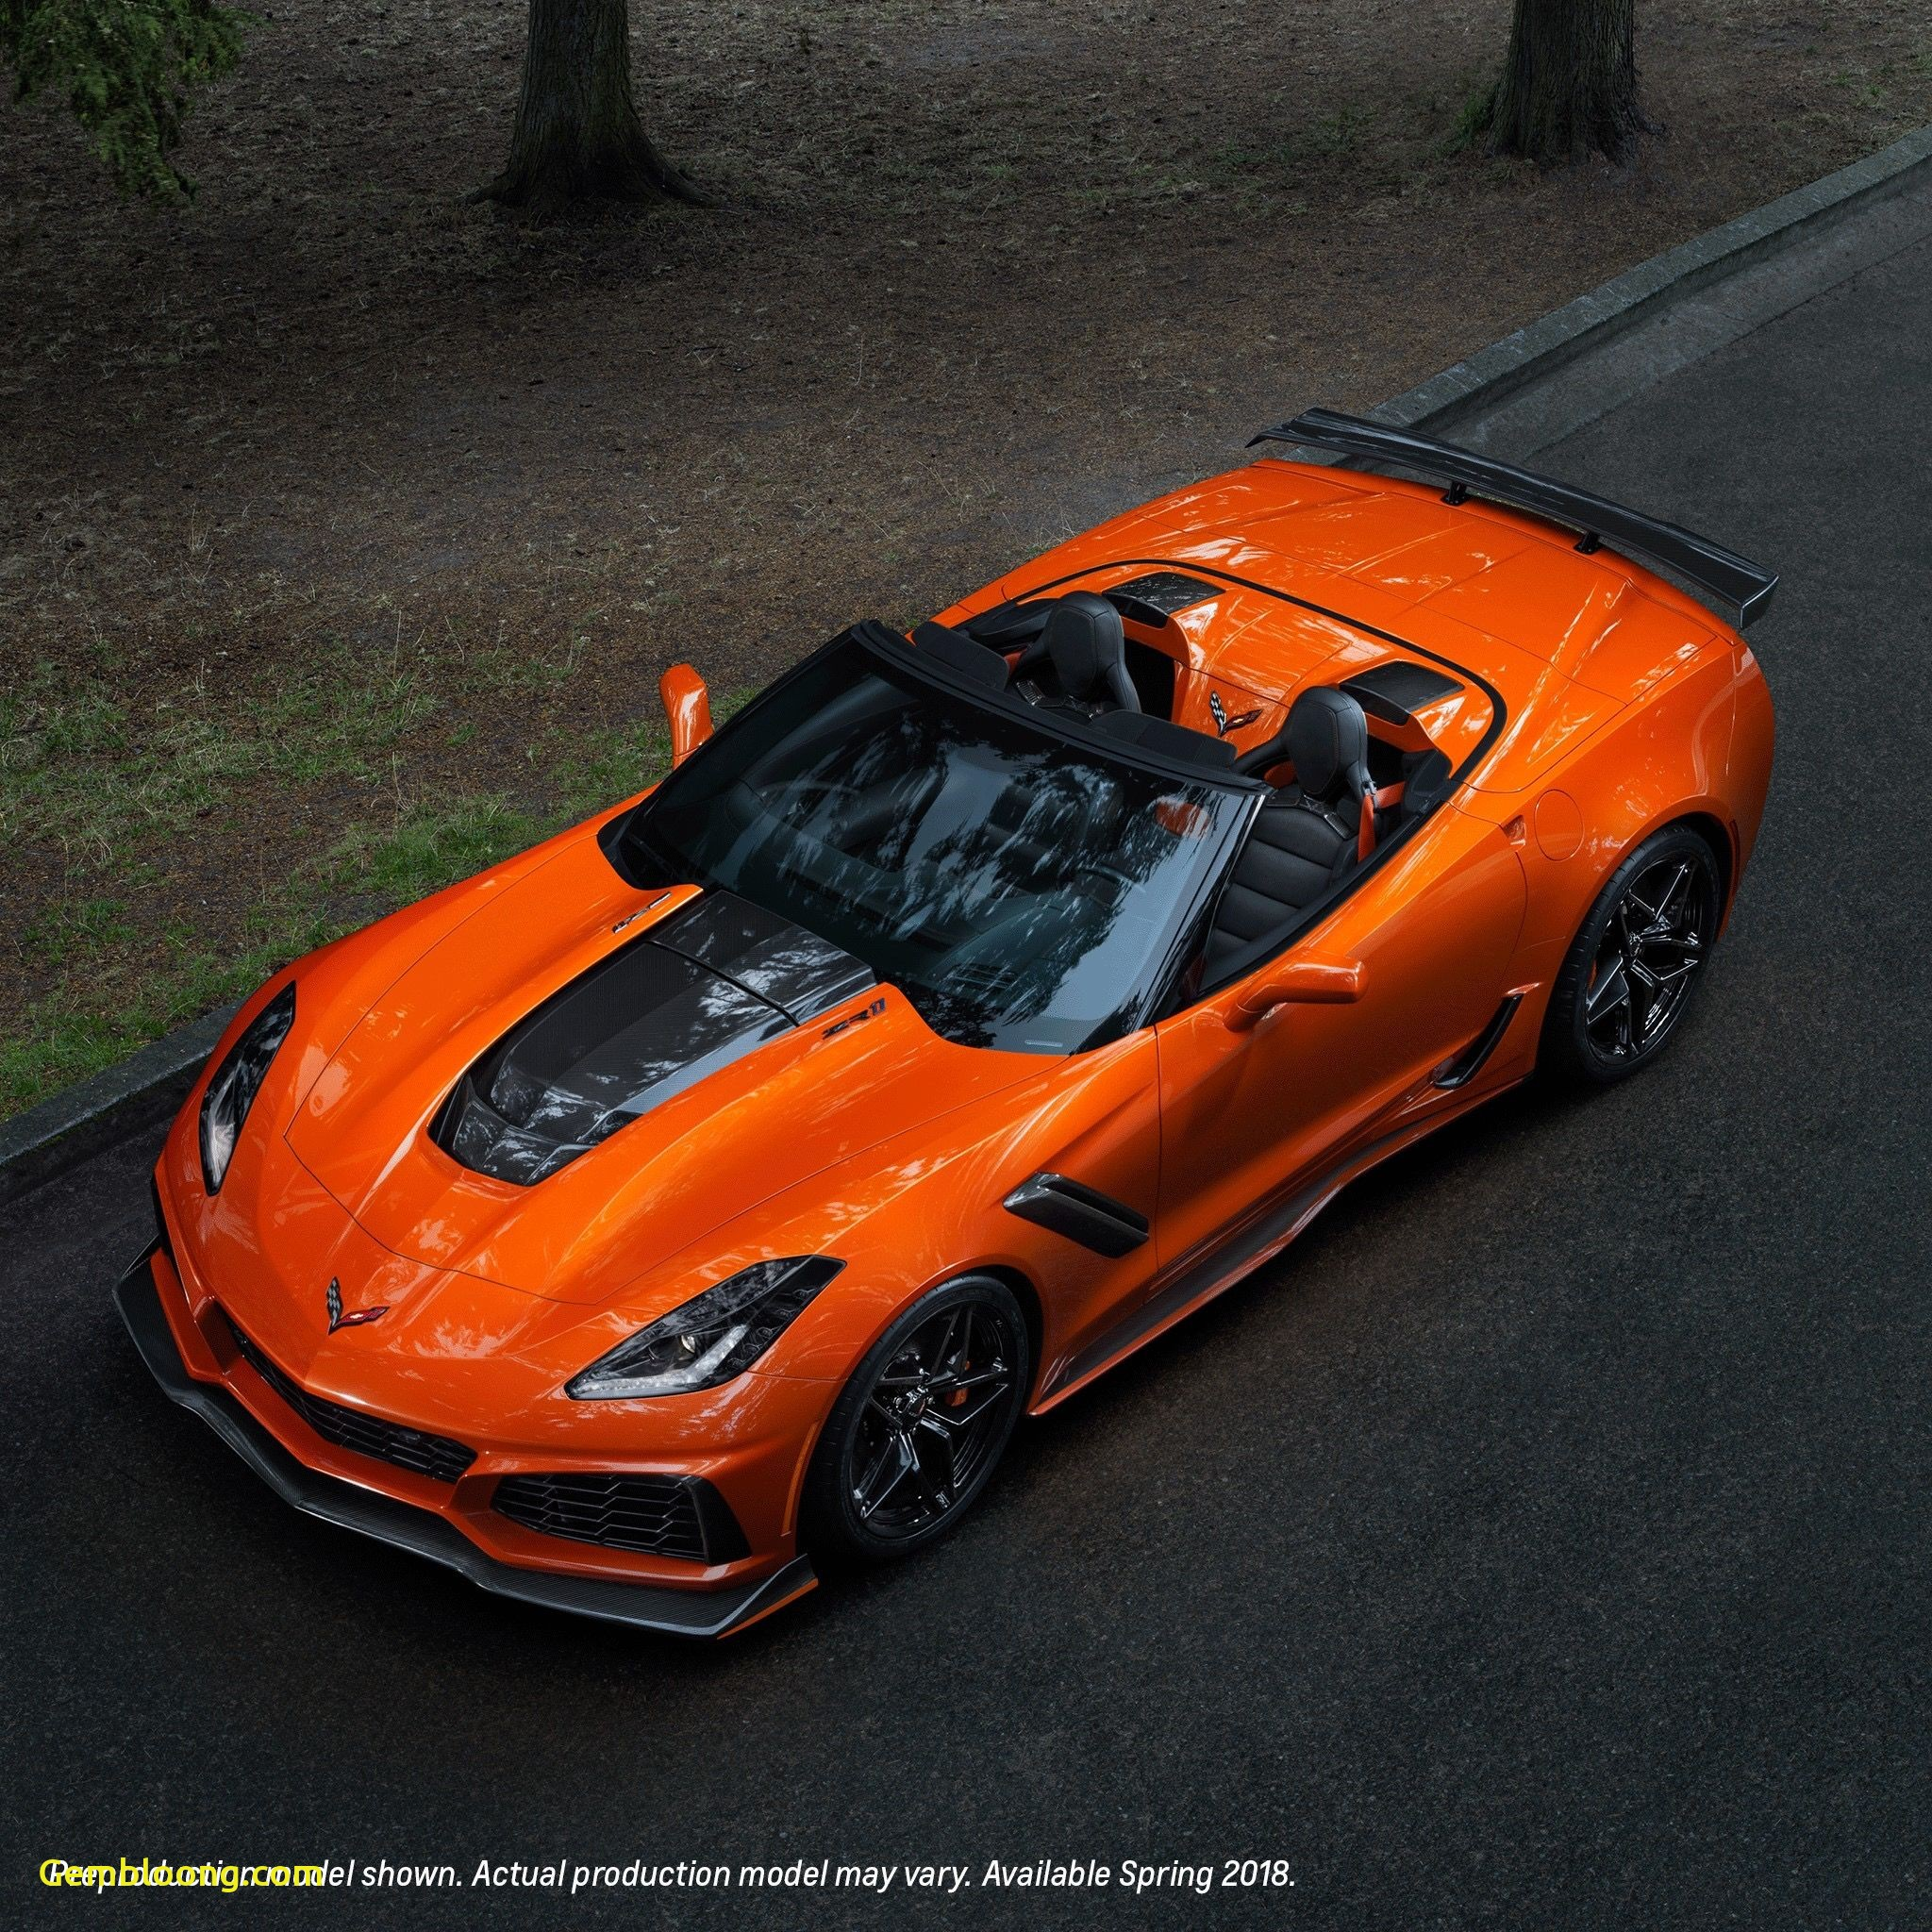 2016 Corvette Z06 Best Of Vette Check Out and Instagram Metalroadstudio